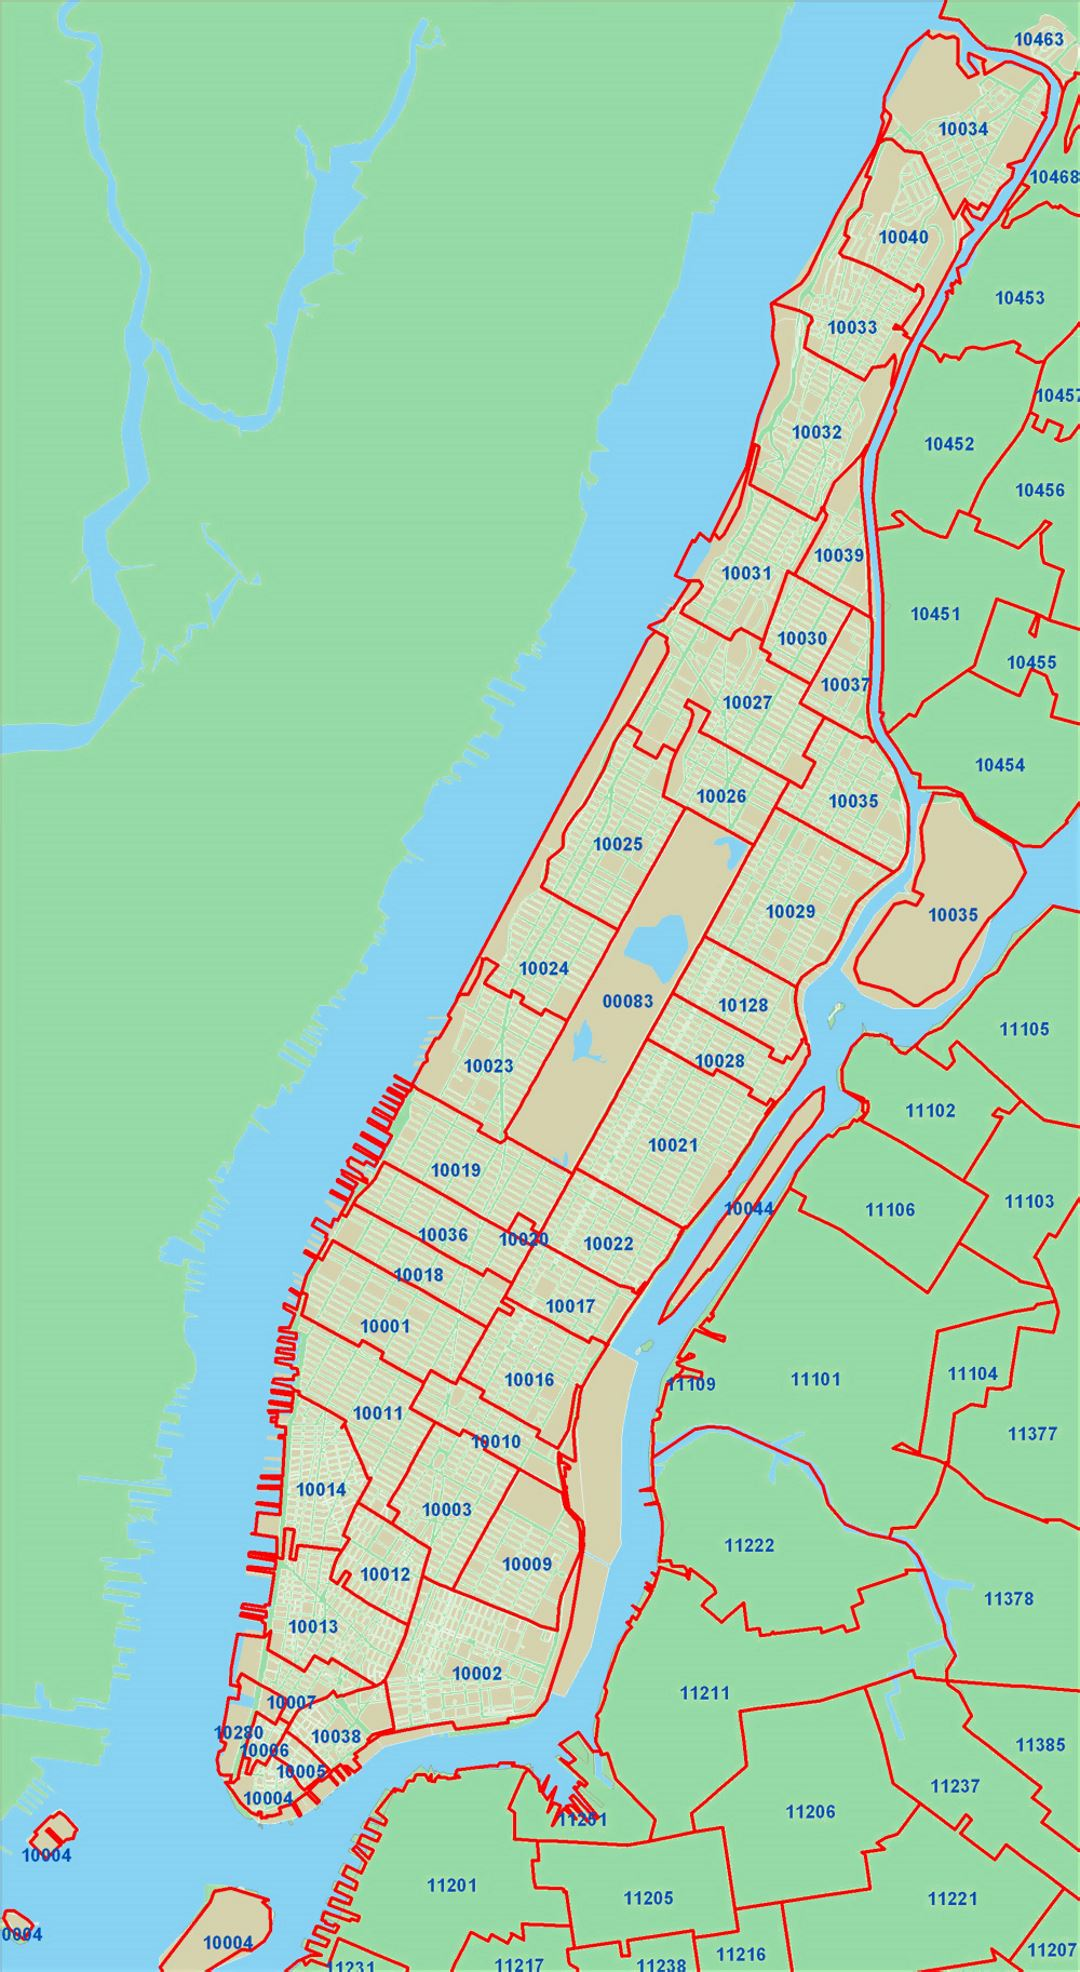 detailed zip codes map of new york city